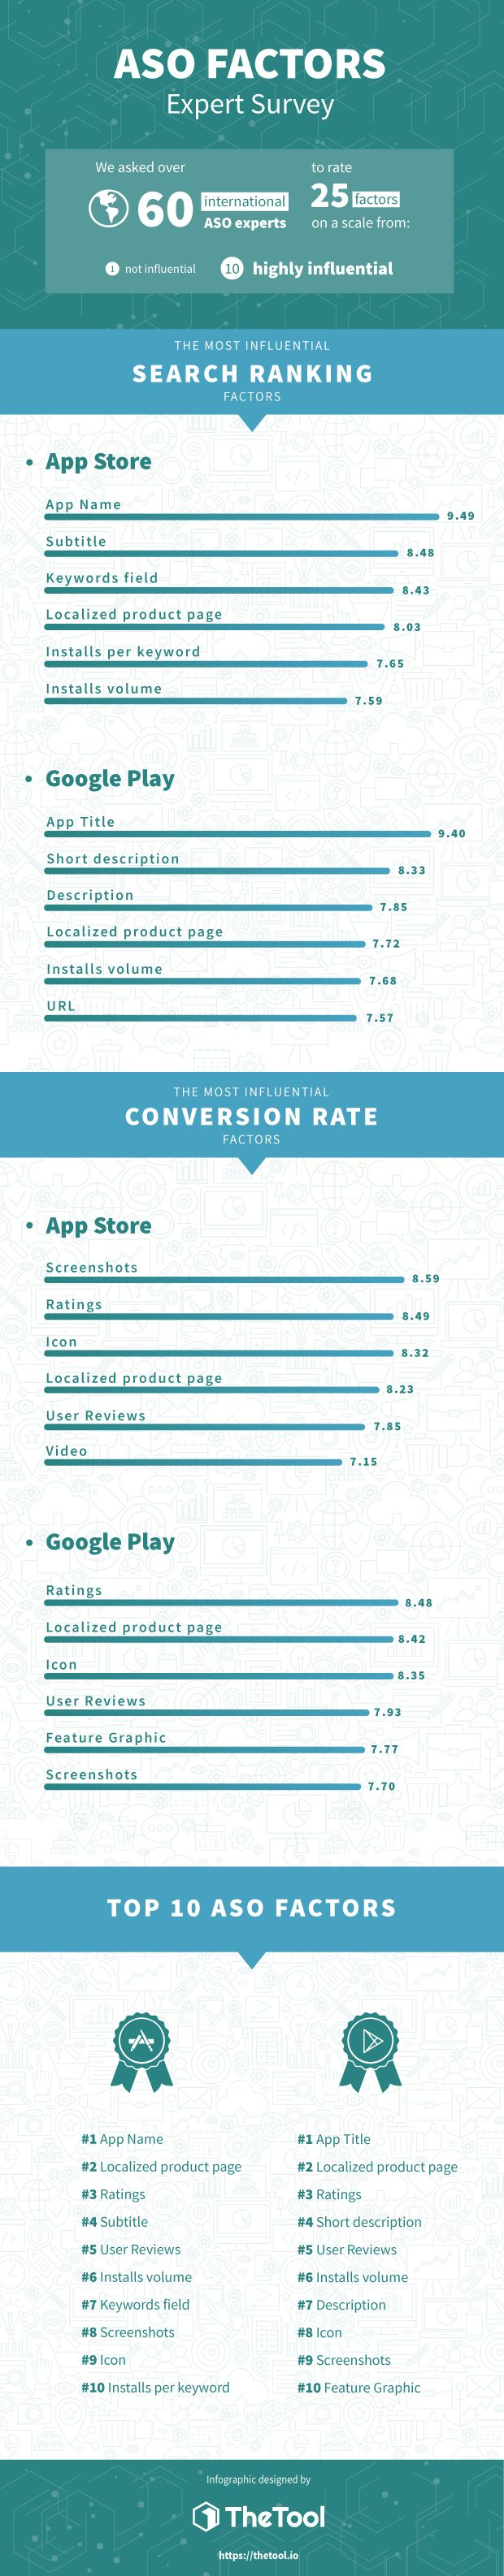 ASO (App Store Optimization) Factors & Trends for 2019